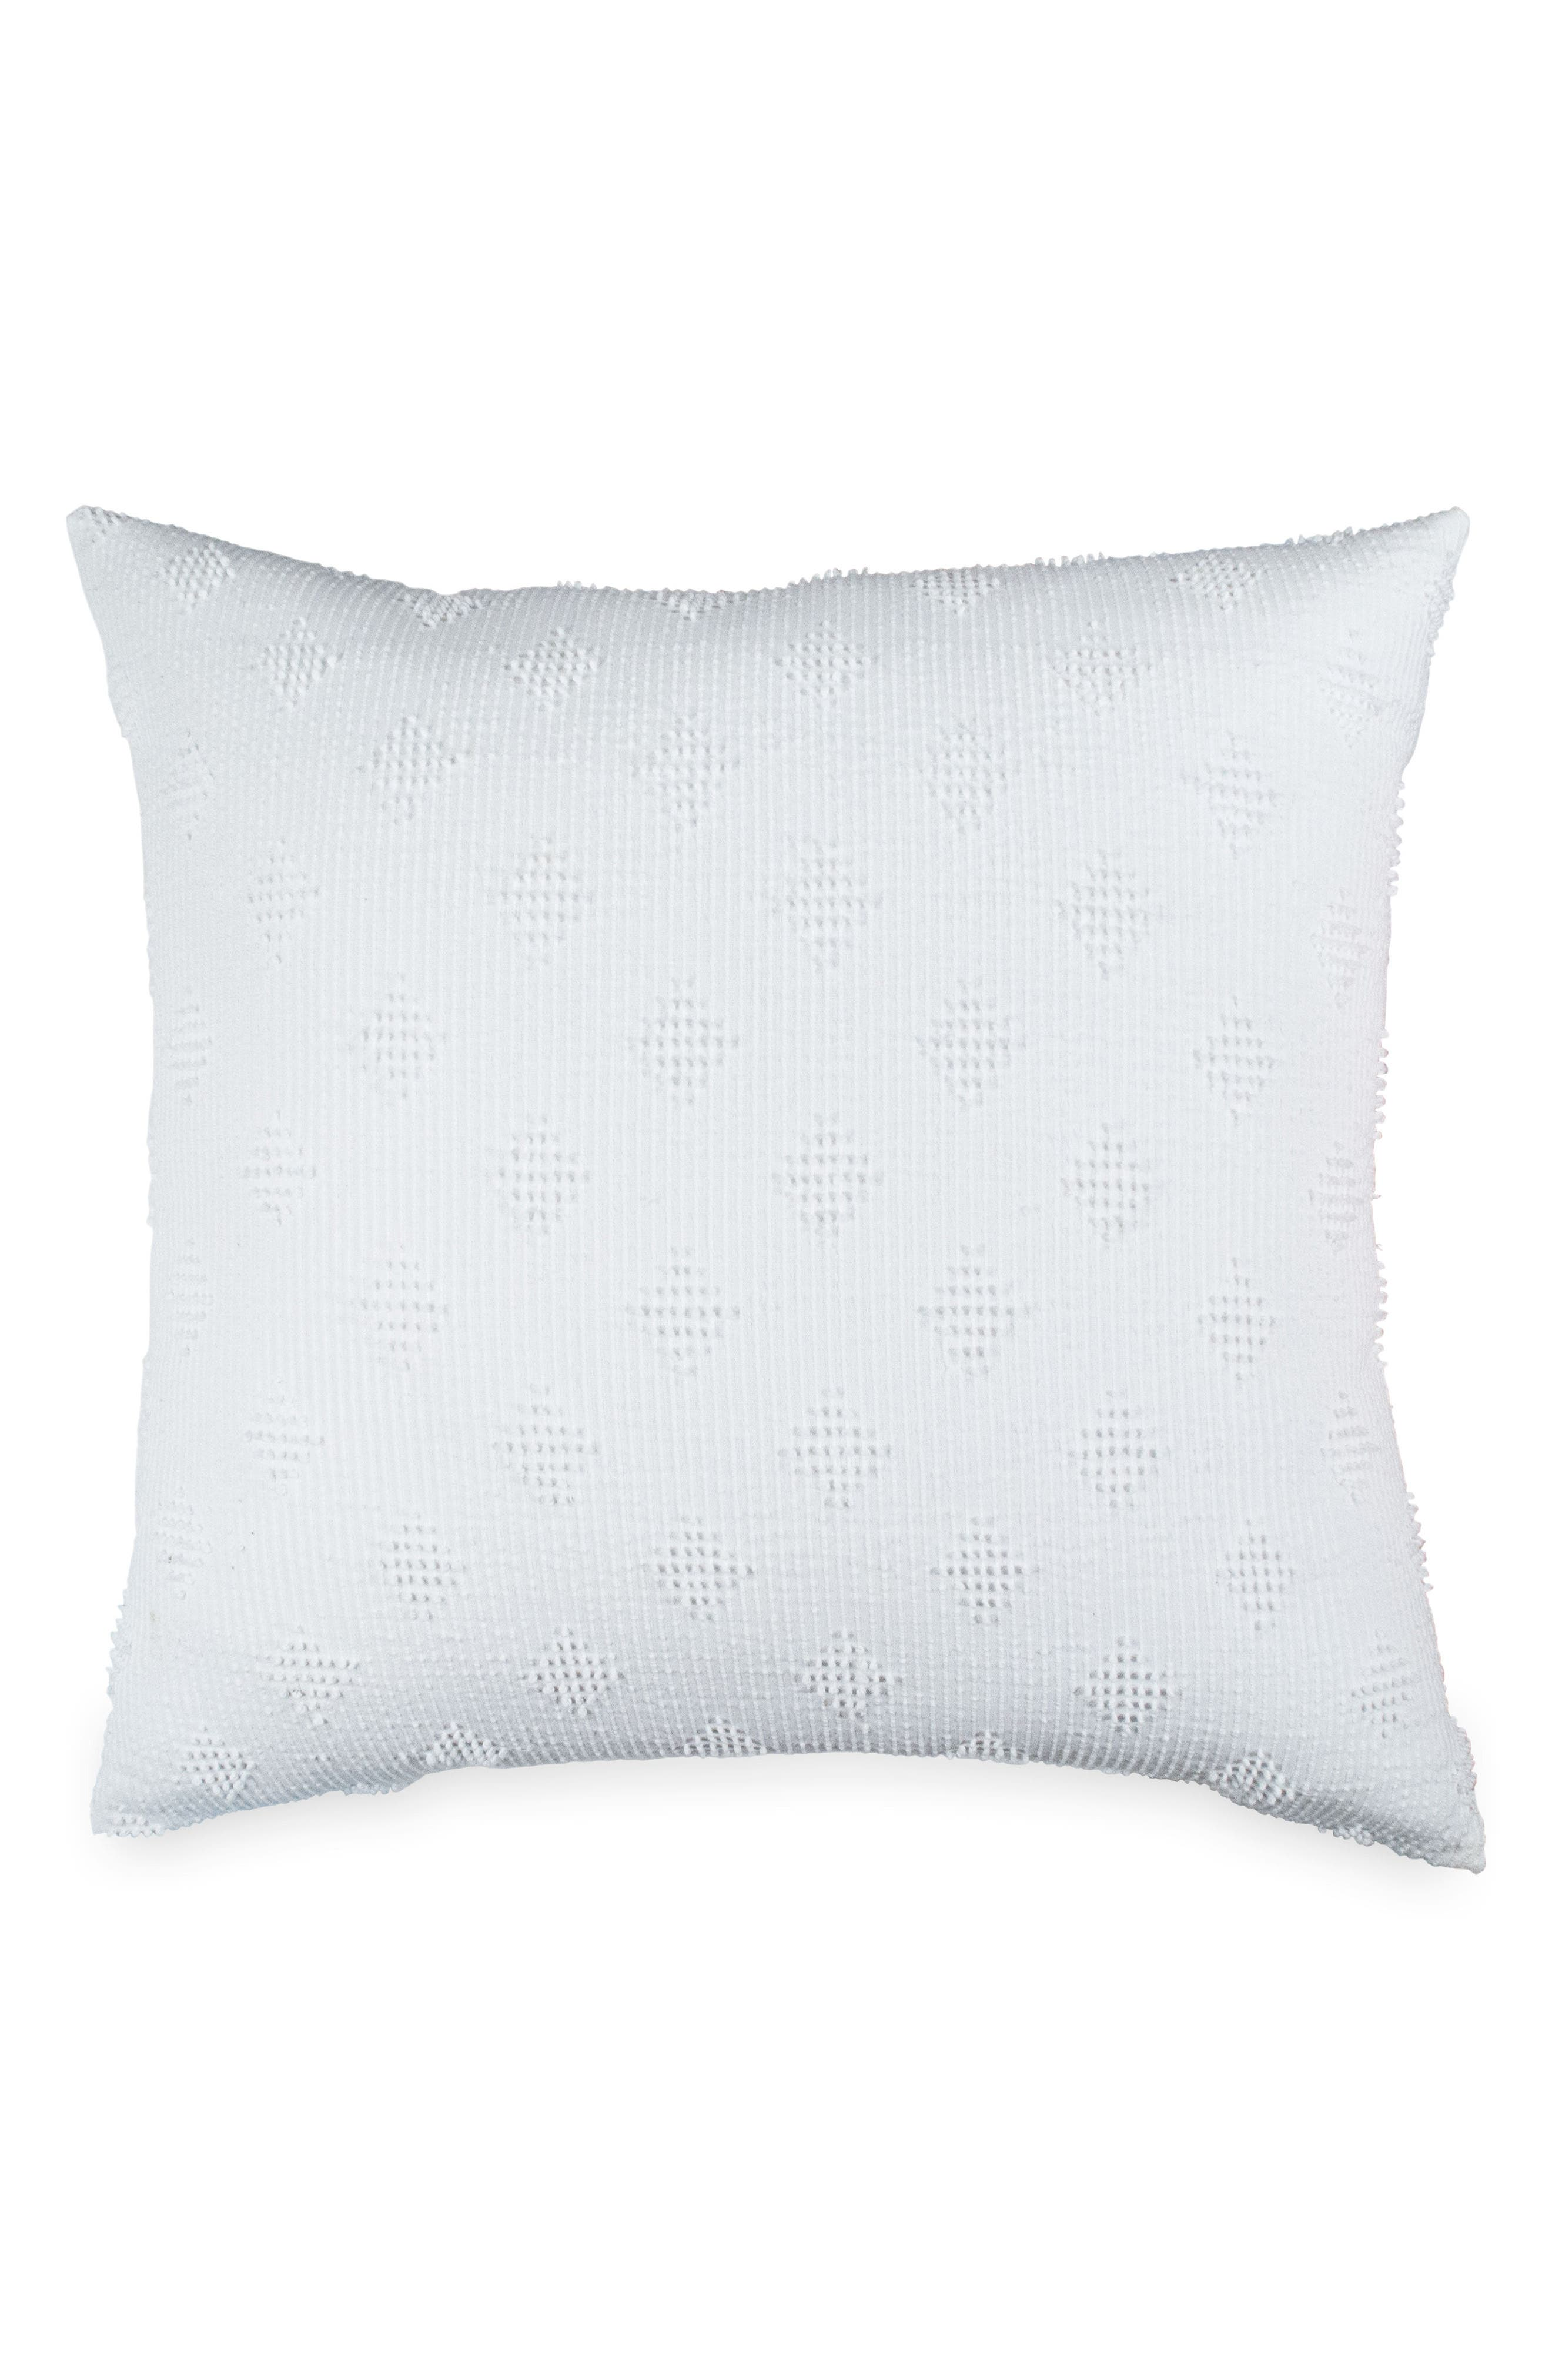 Candlewick Diamond Euro Sham,                         Main,                         color, White